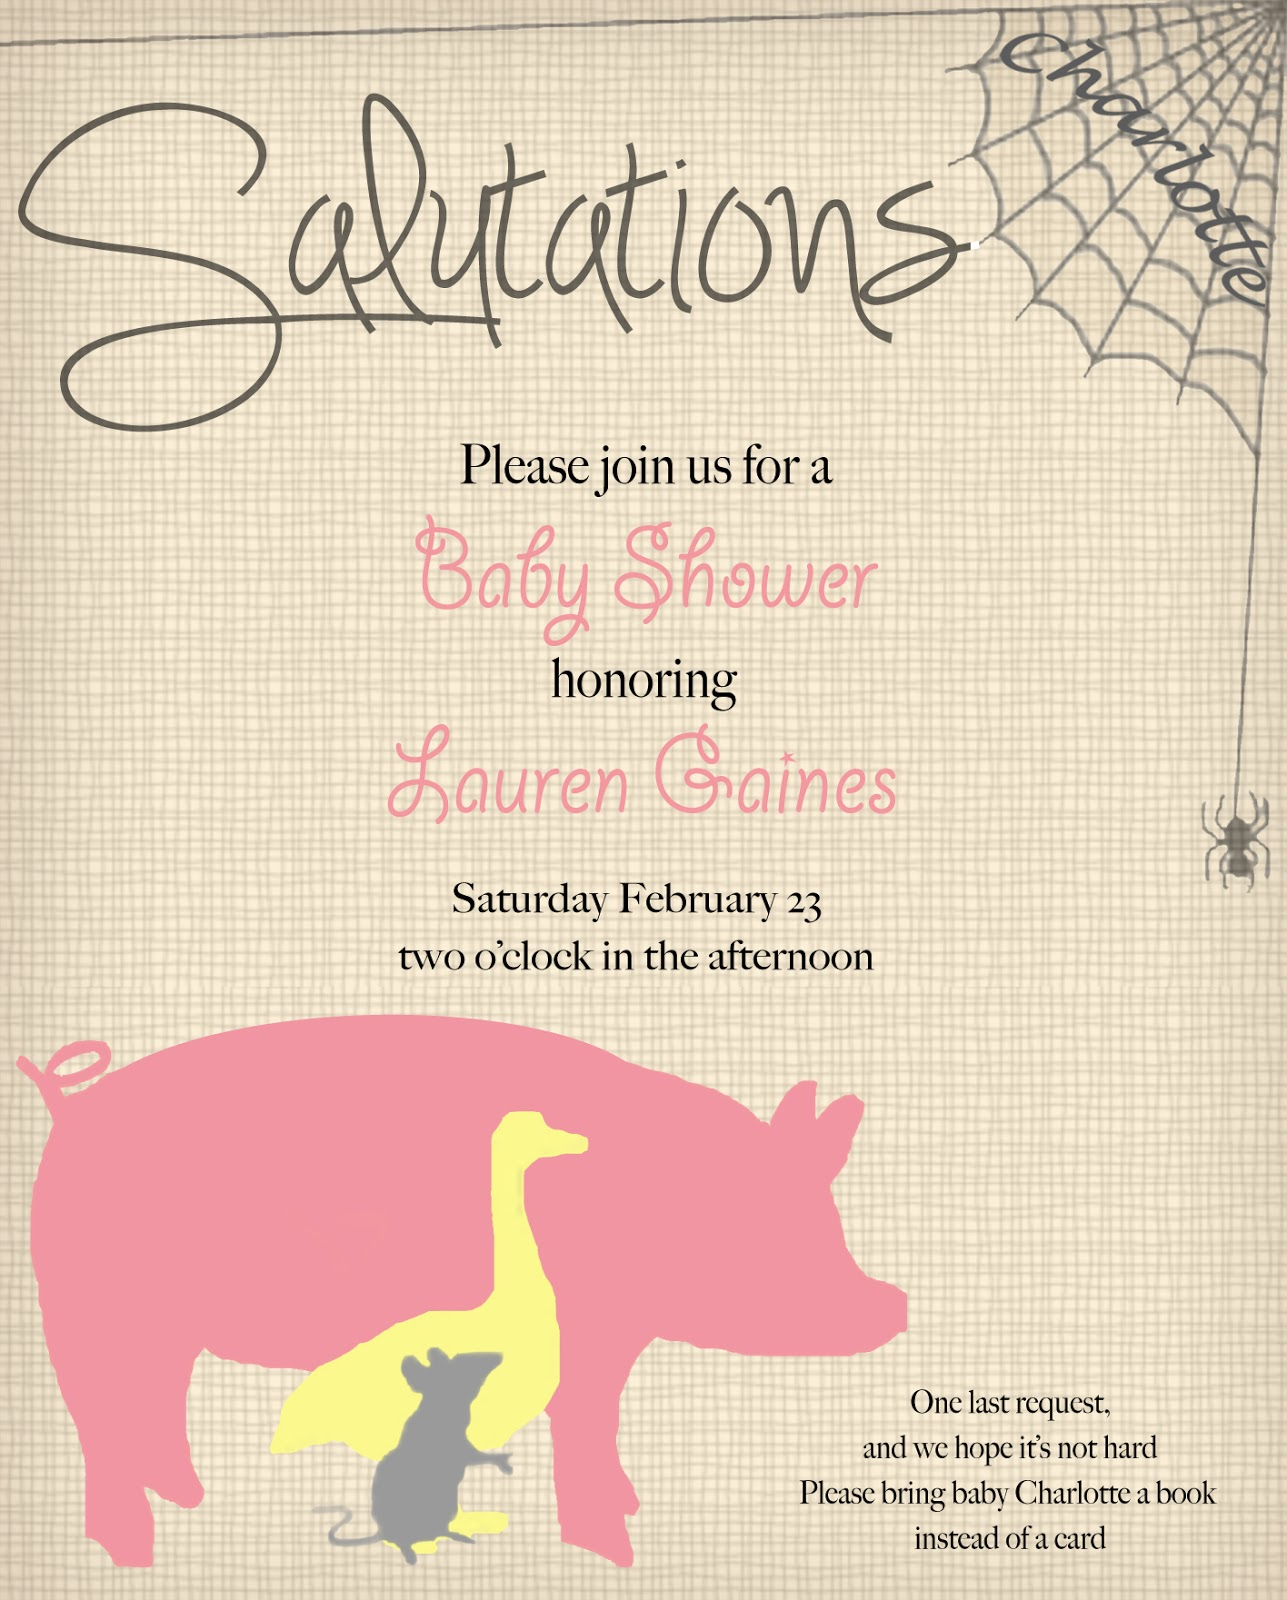 sail south home charlotte 39 s web baby shower